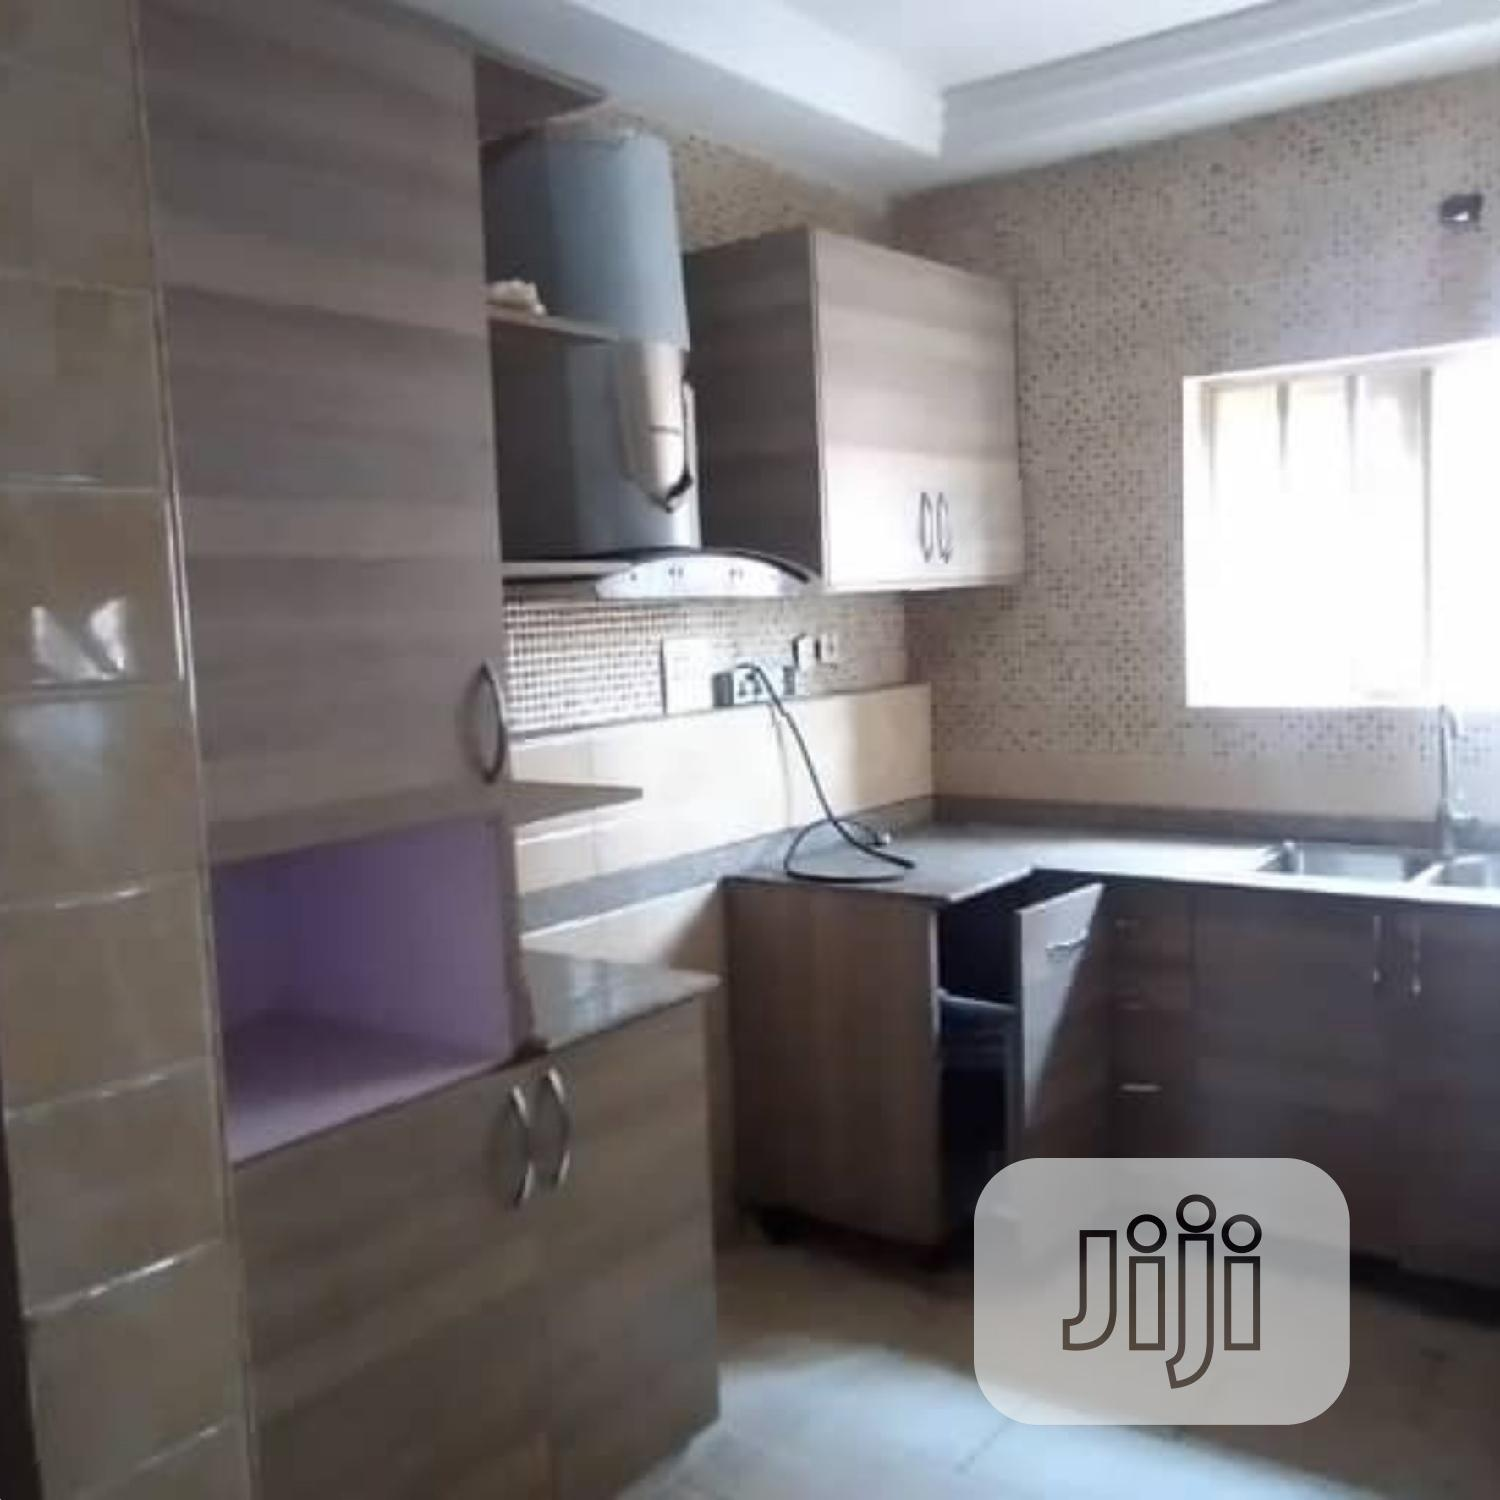 A New 5 Bedroom Detached House With Bq at Magodo for Sale   Houses & Apartments For Sale for sale in Magodo, Lagos State, Nigeria